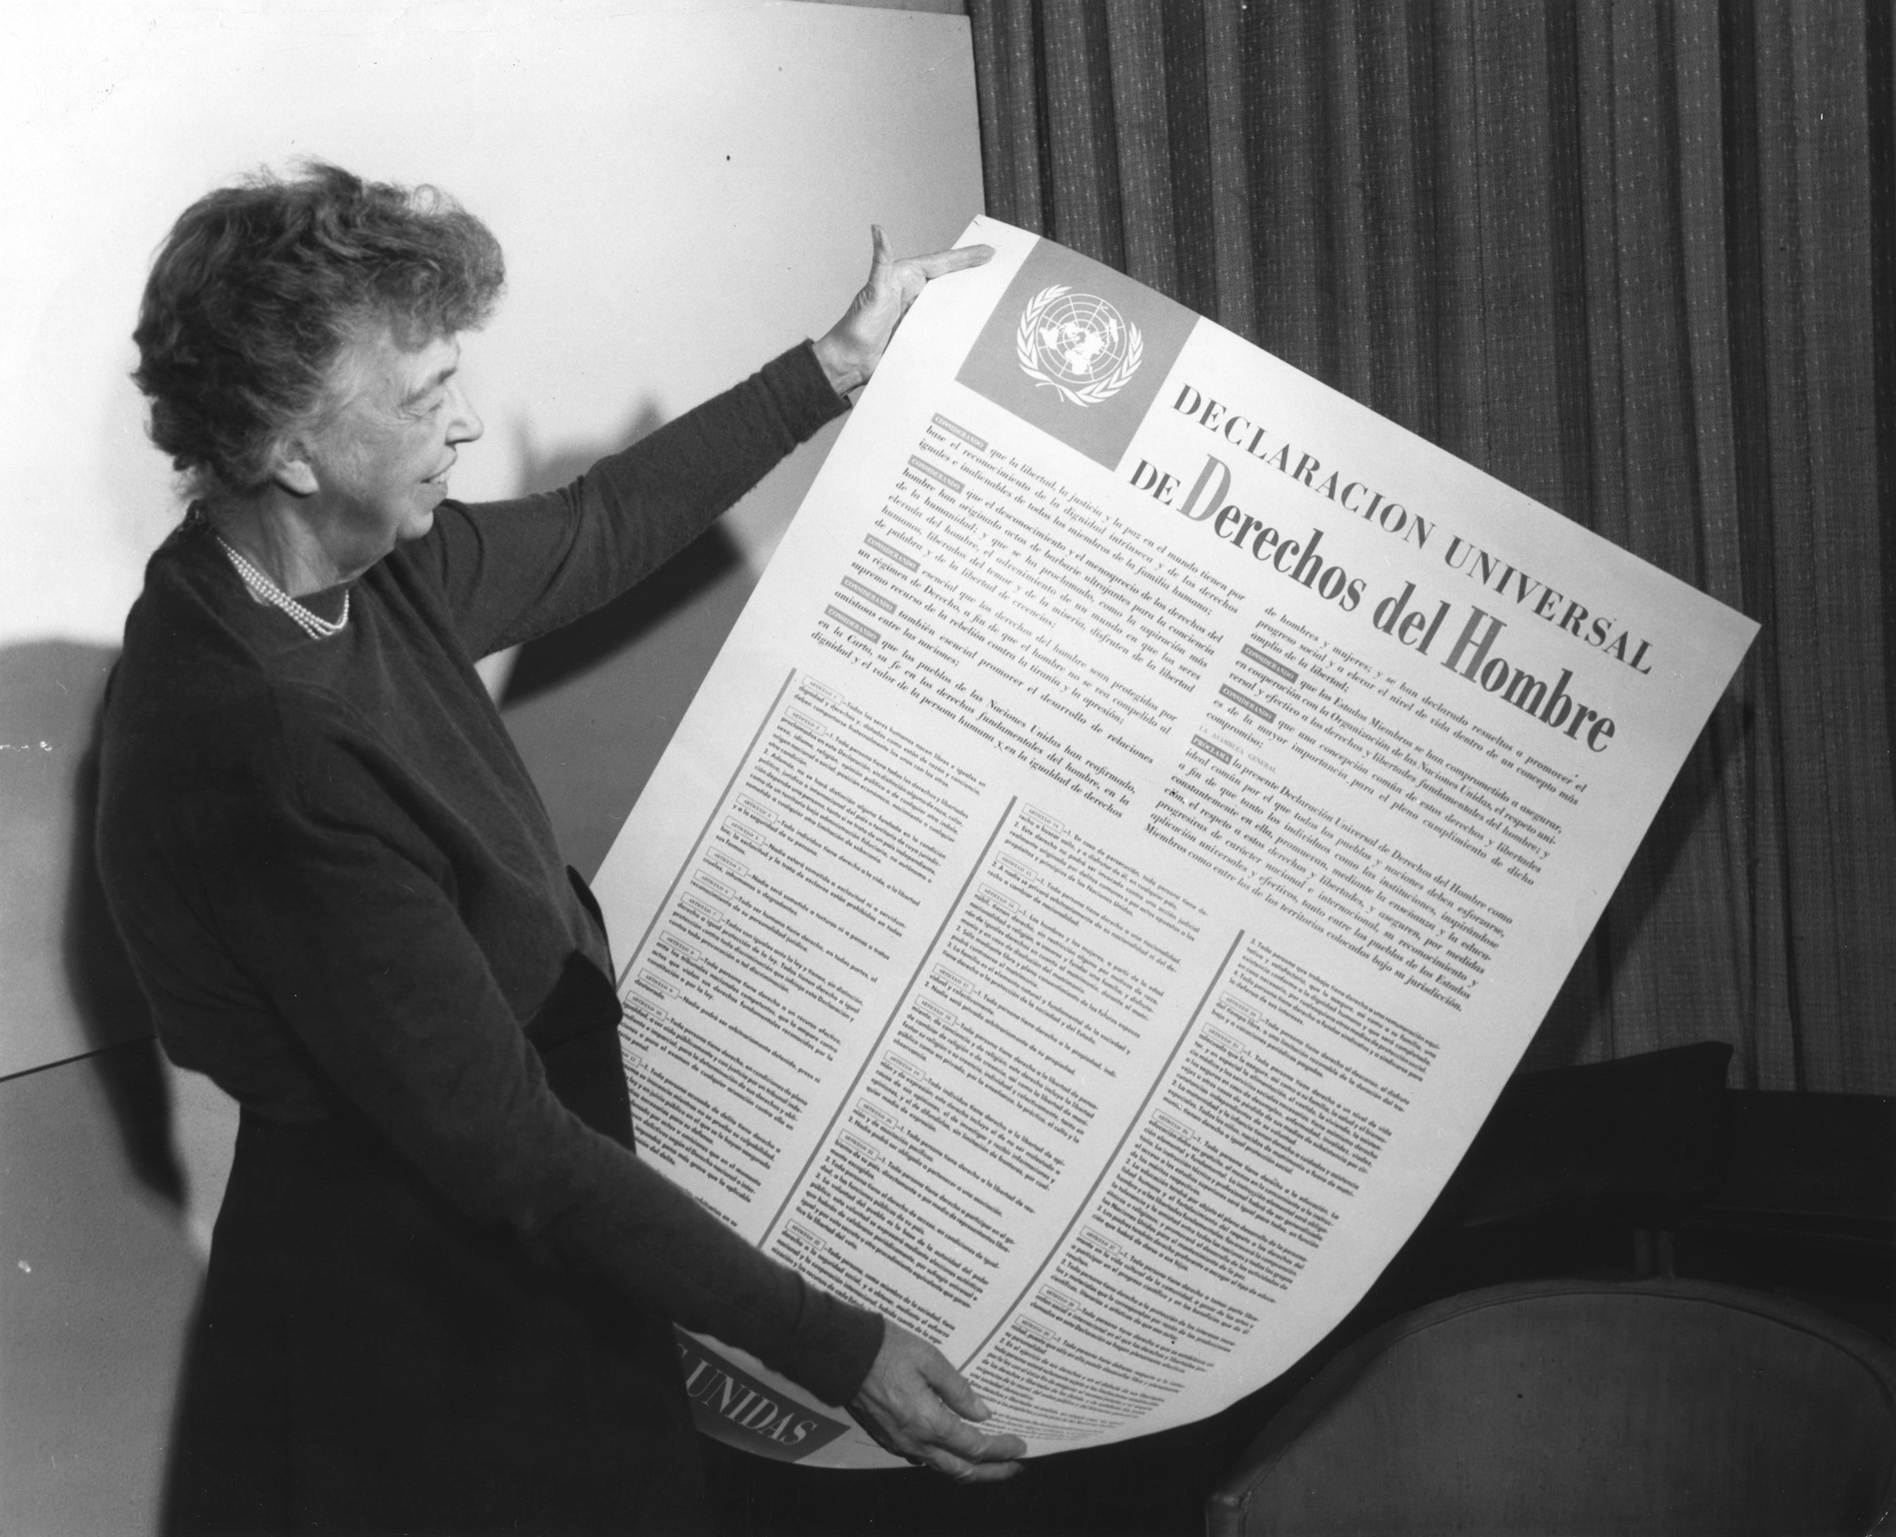 2012 in roosevelt history eleanor roosevelt and universal declaration of human rights